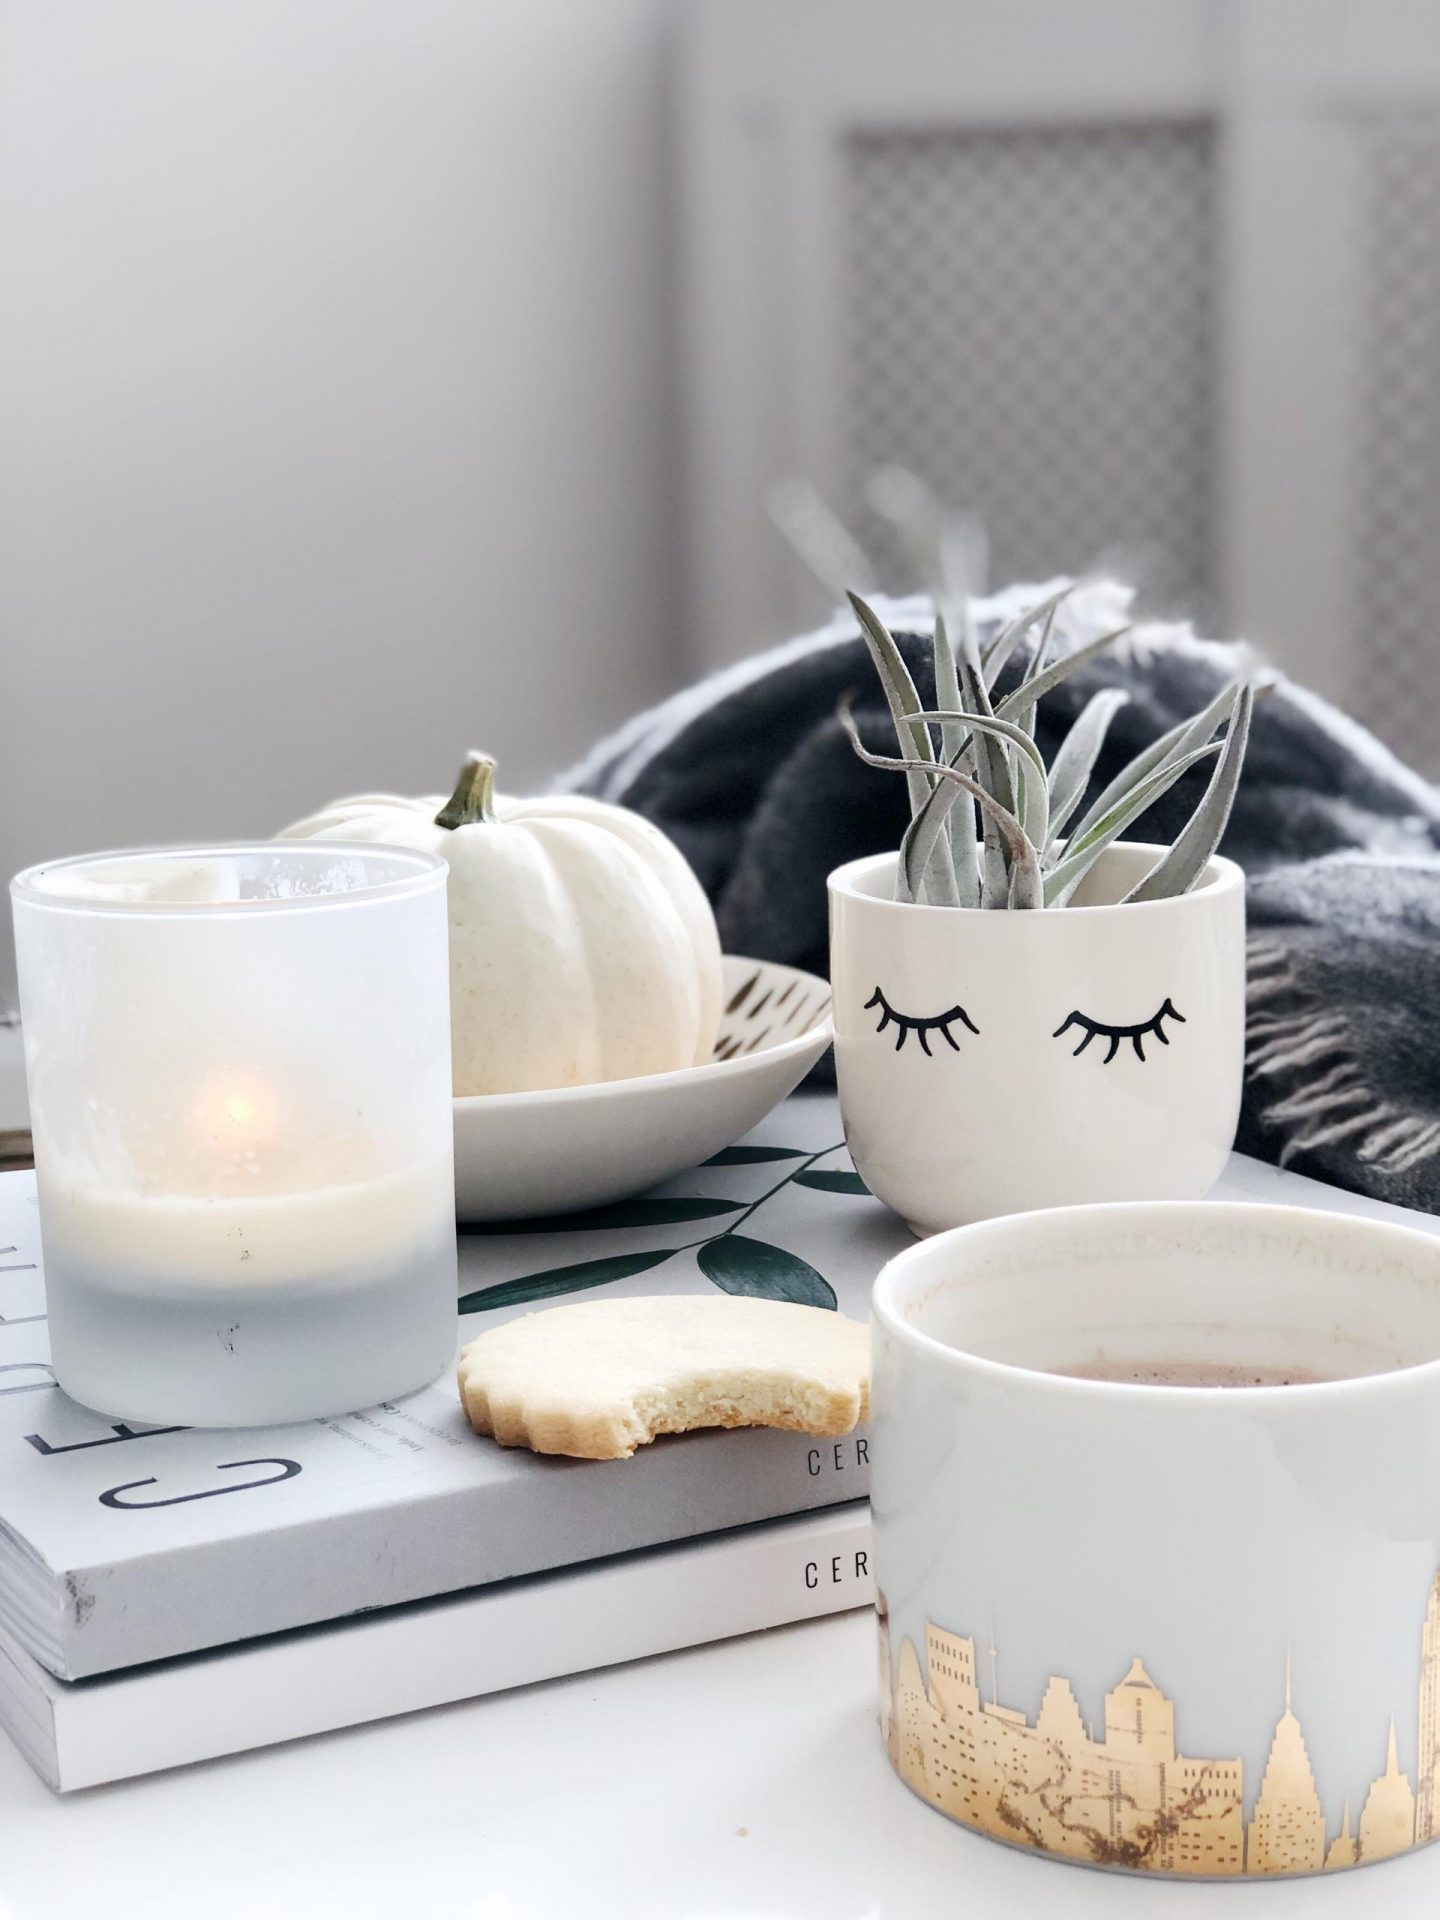 Chasing slow, choosing joy | White pumpkins cosy autumn scenes